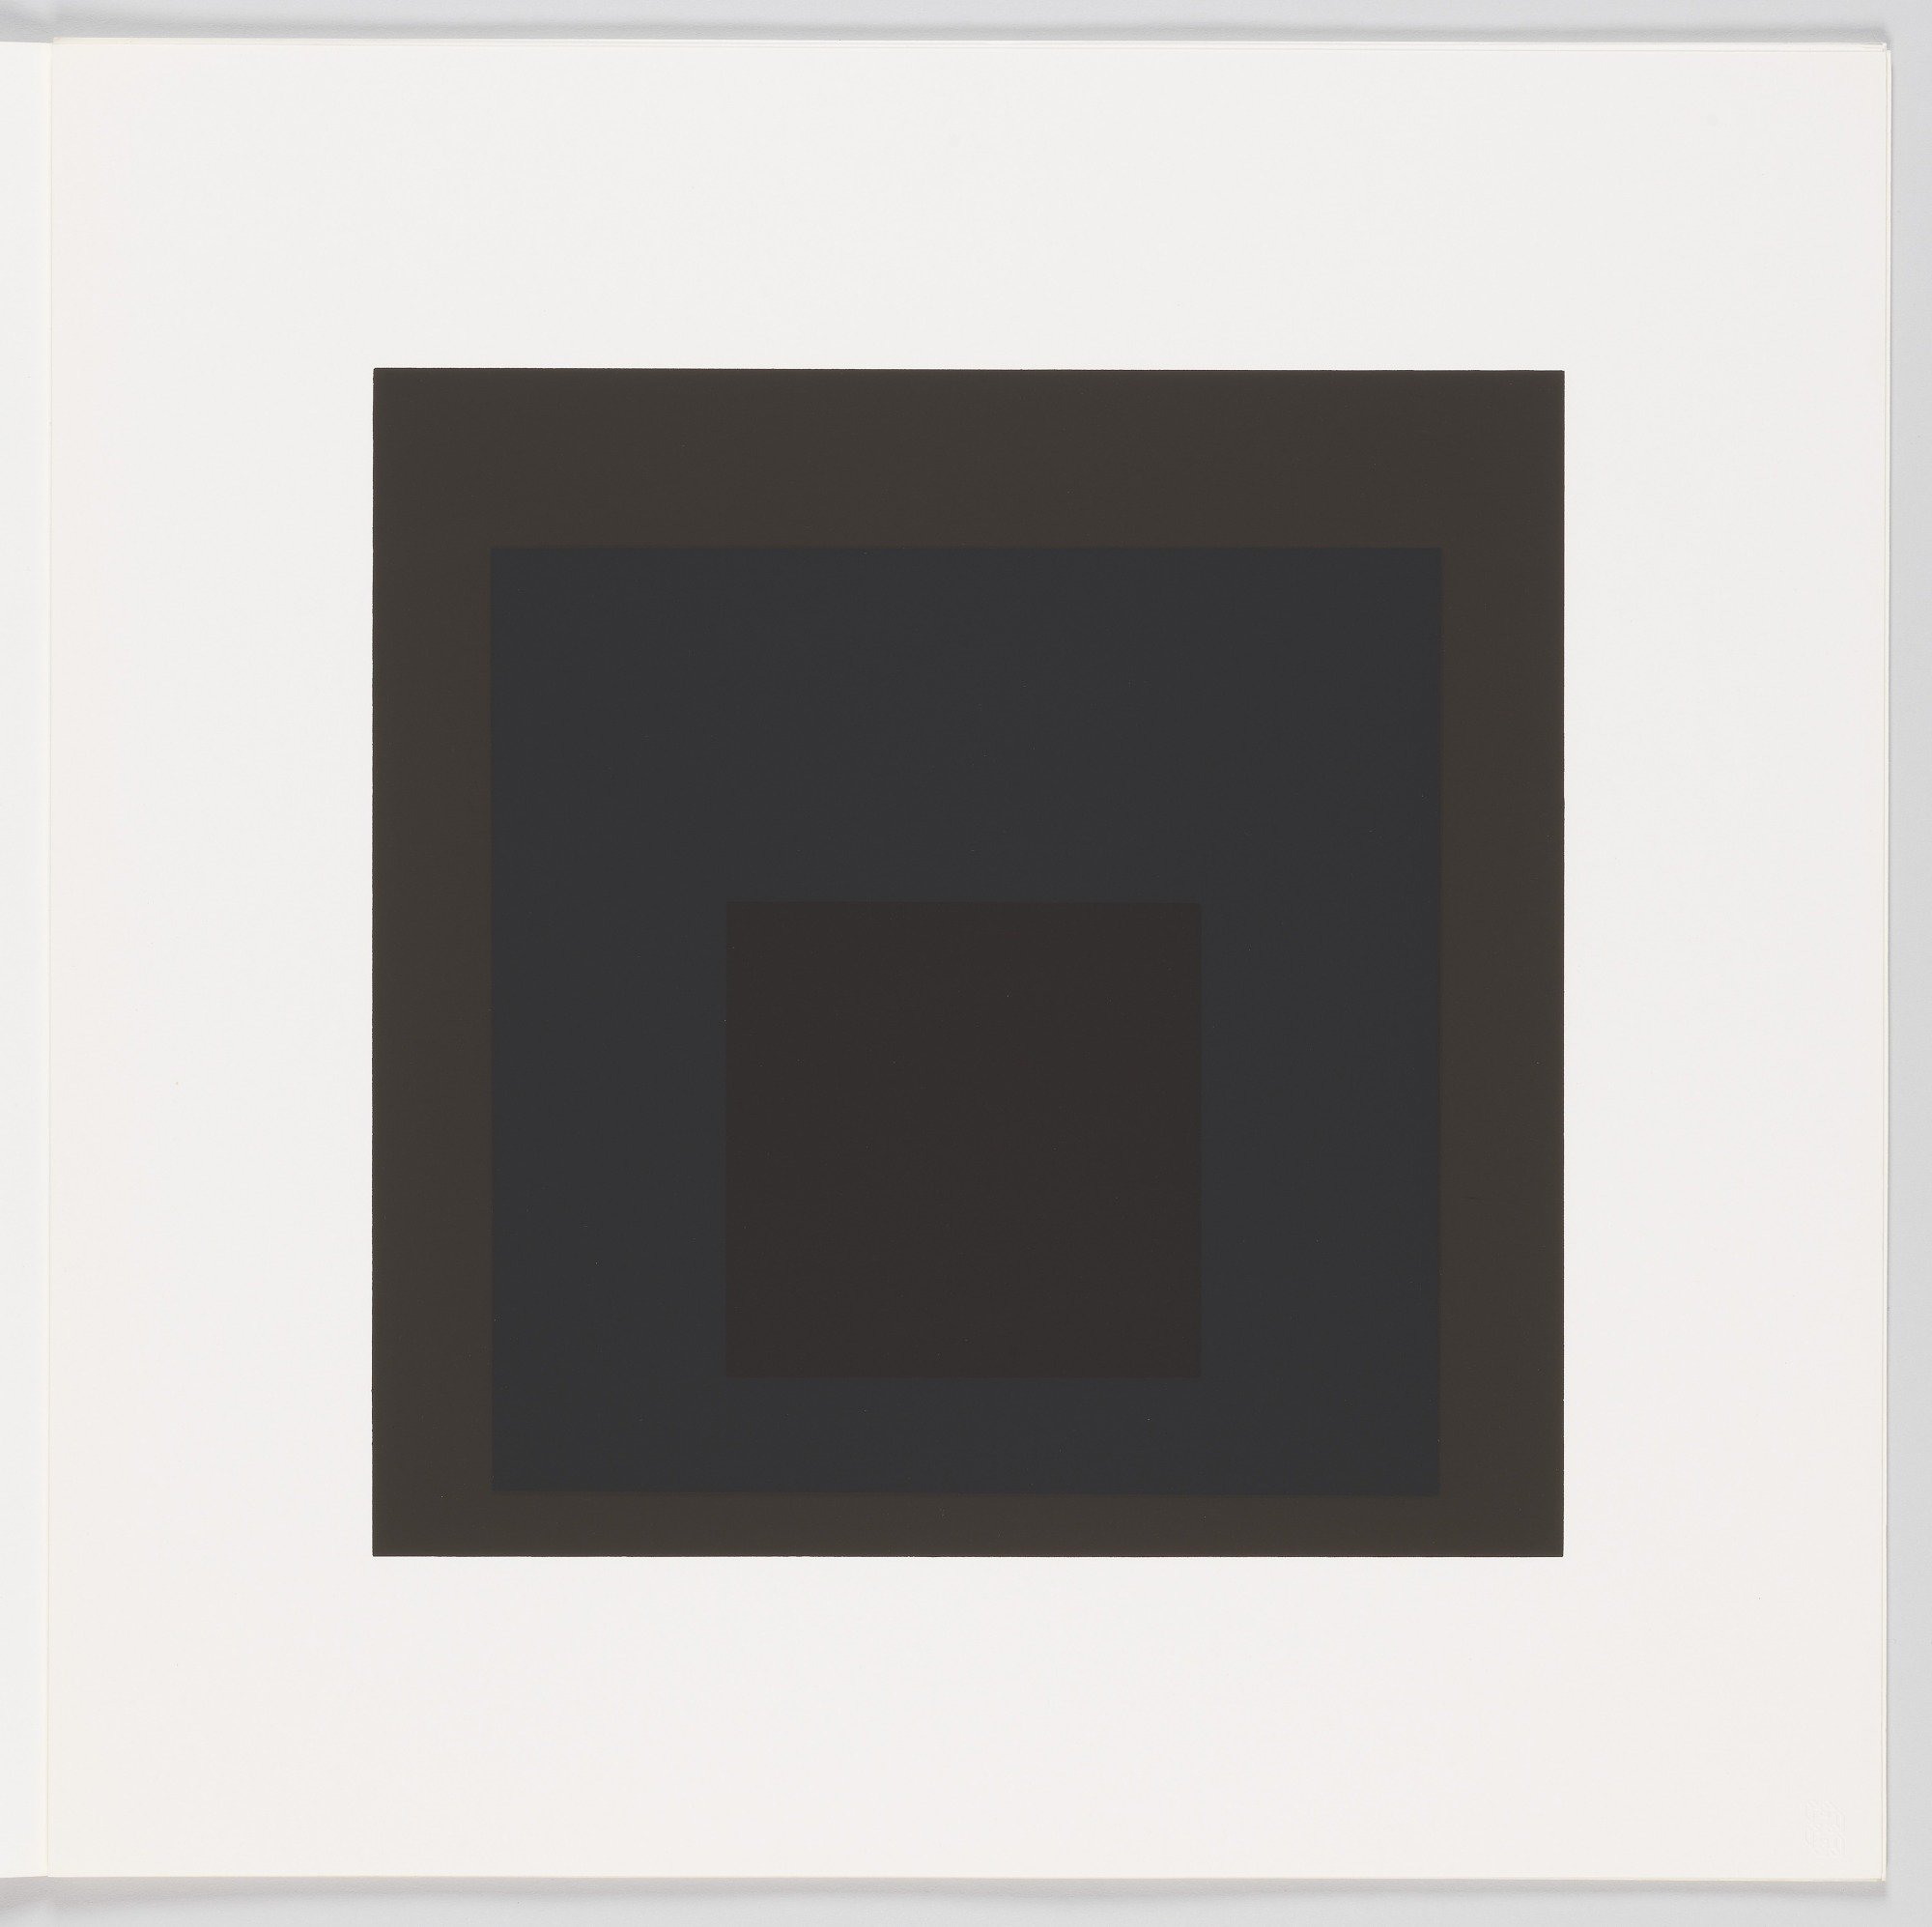 Profundo, Homage to the Square, Soft Edge – Hard Edge